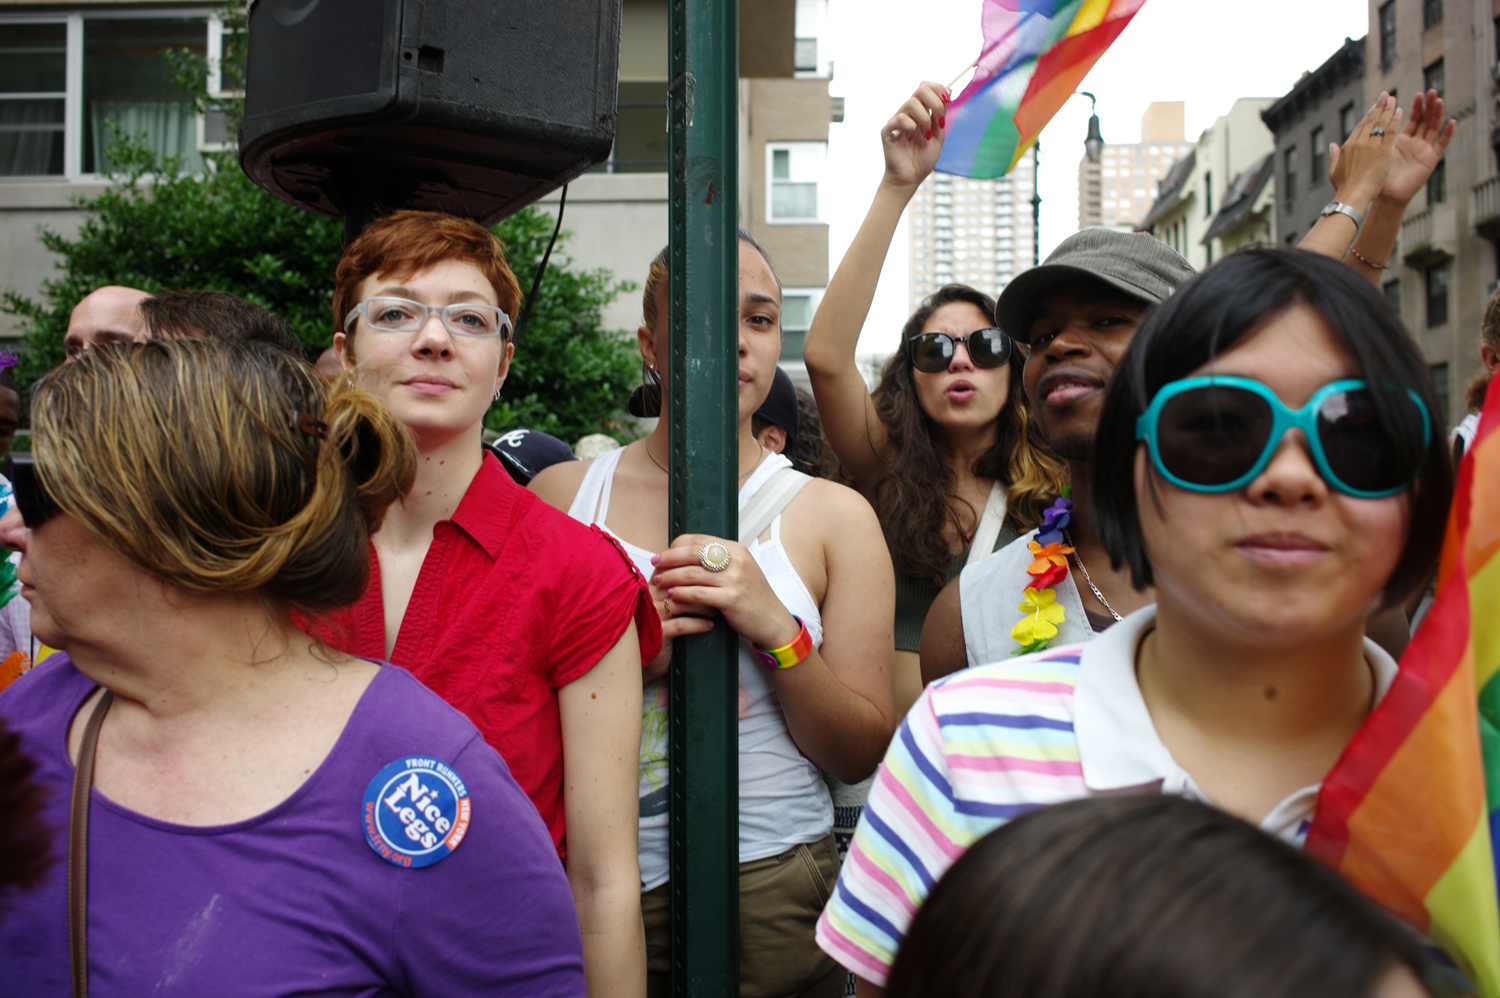 Scenes from the parade, June 26, 2011.